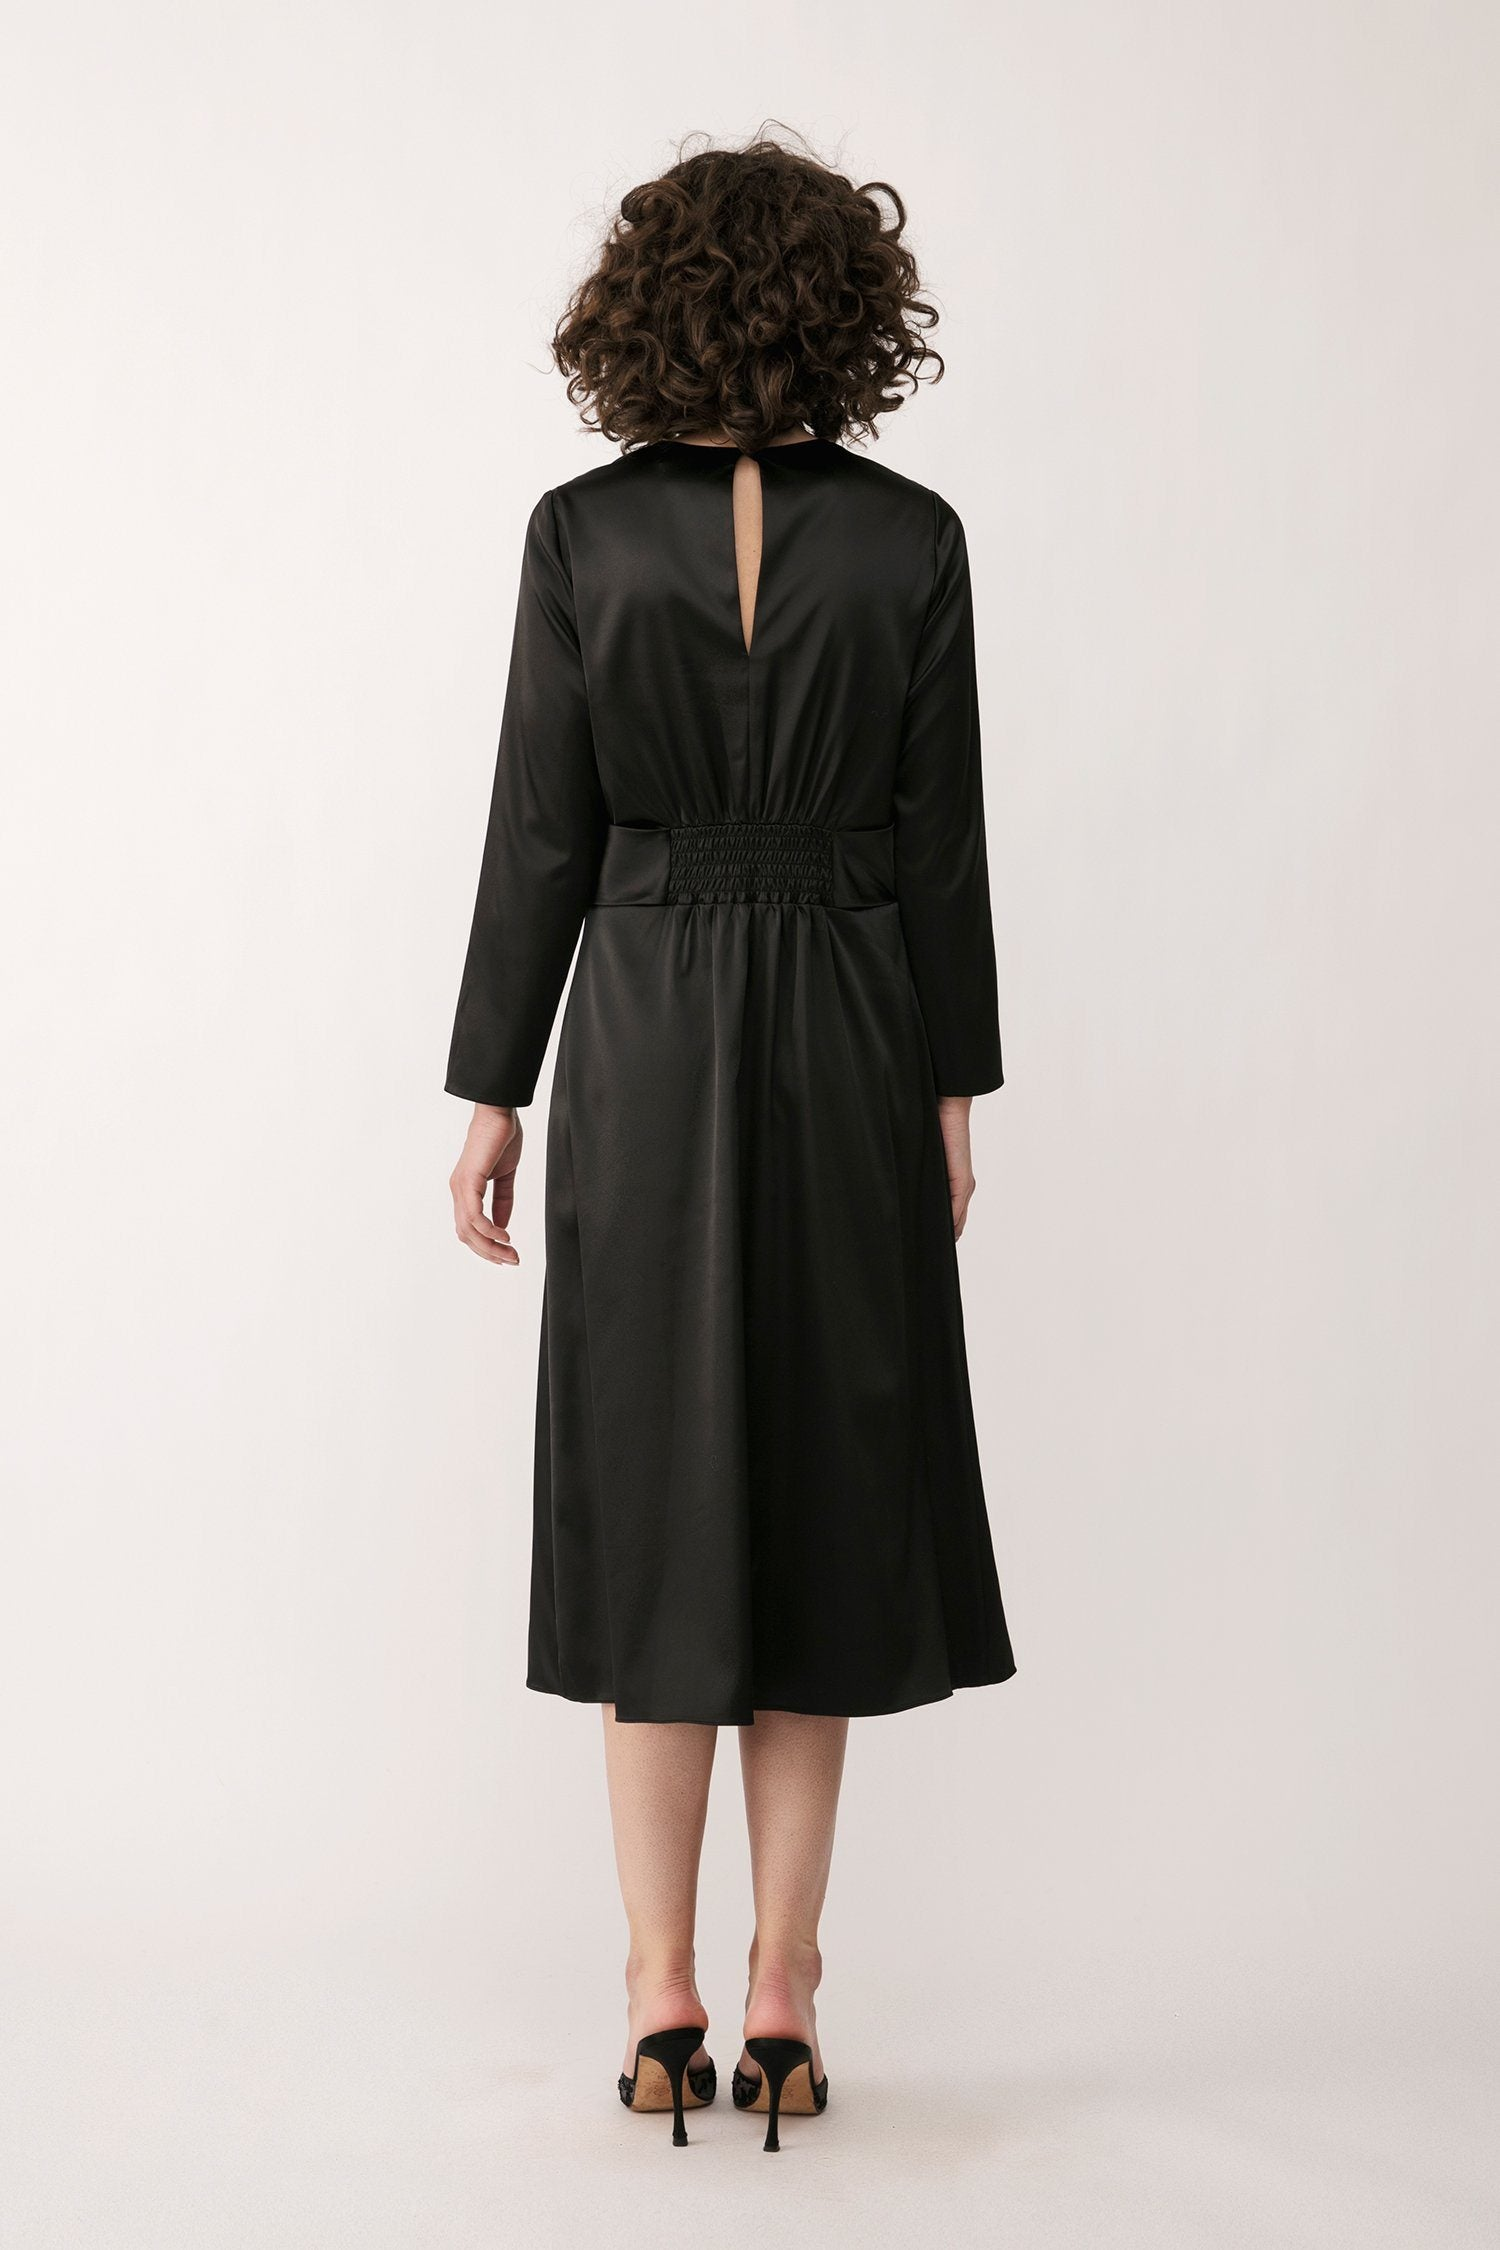 MILANO DRESS - BLACK Dress Stylein